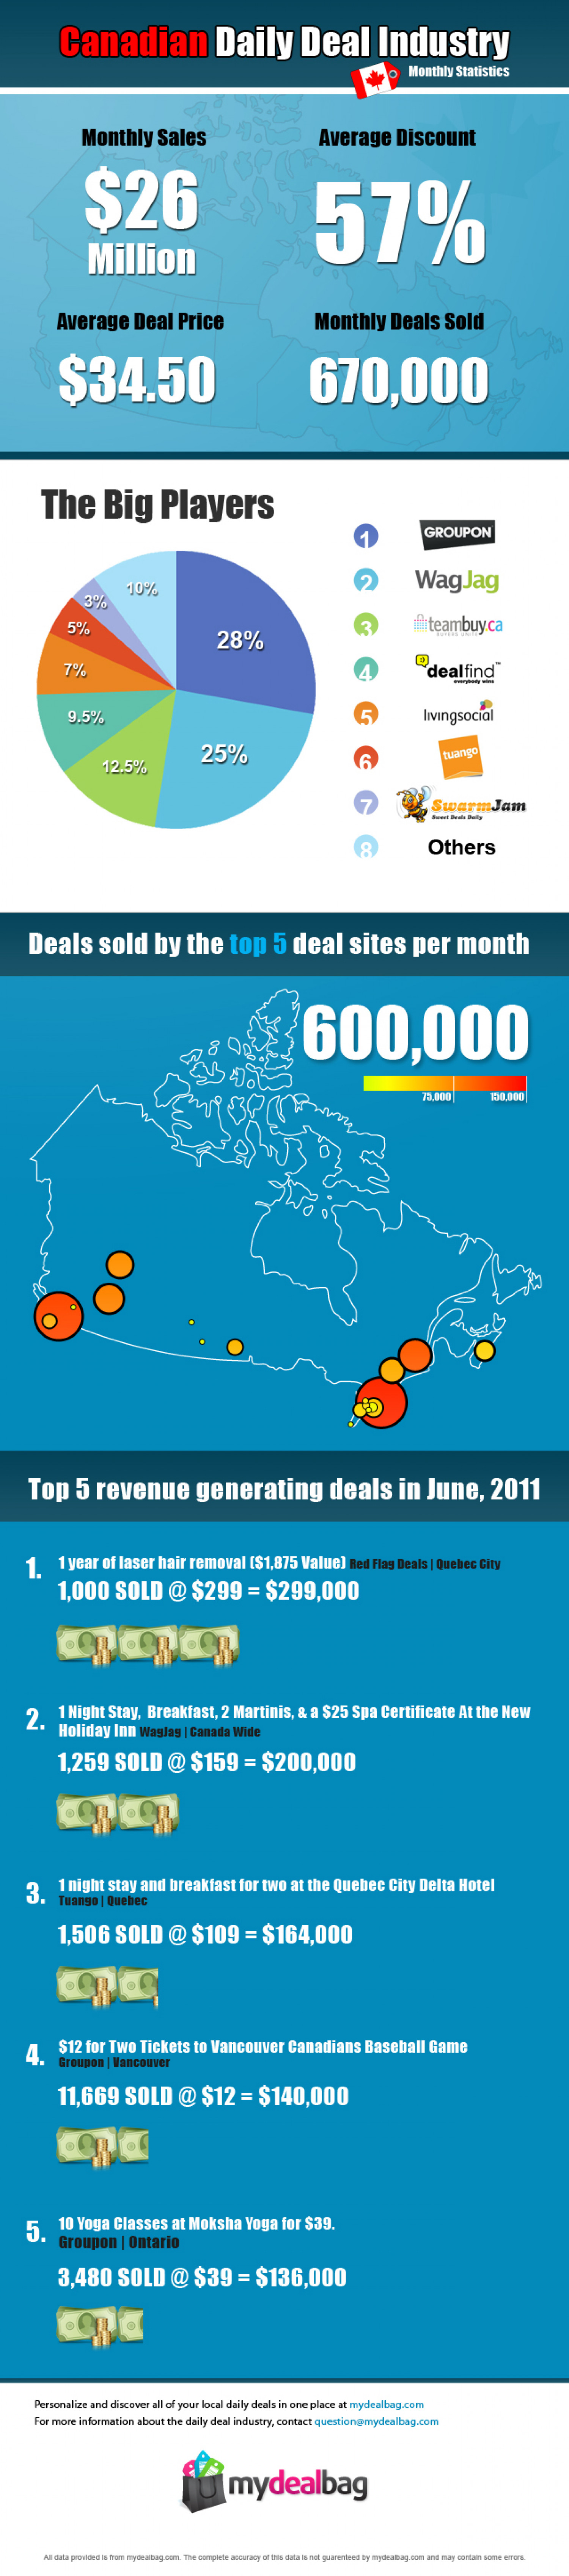 Canadian Daily Deal Industry  Infographic